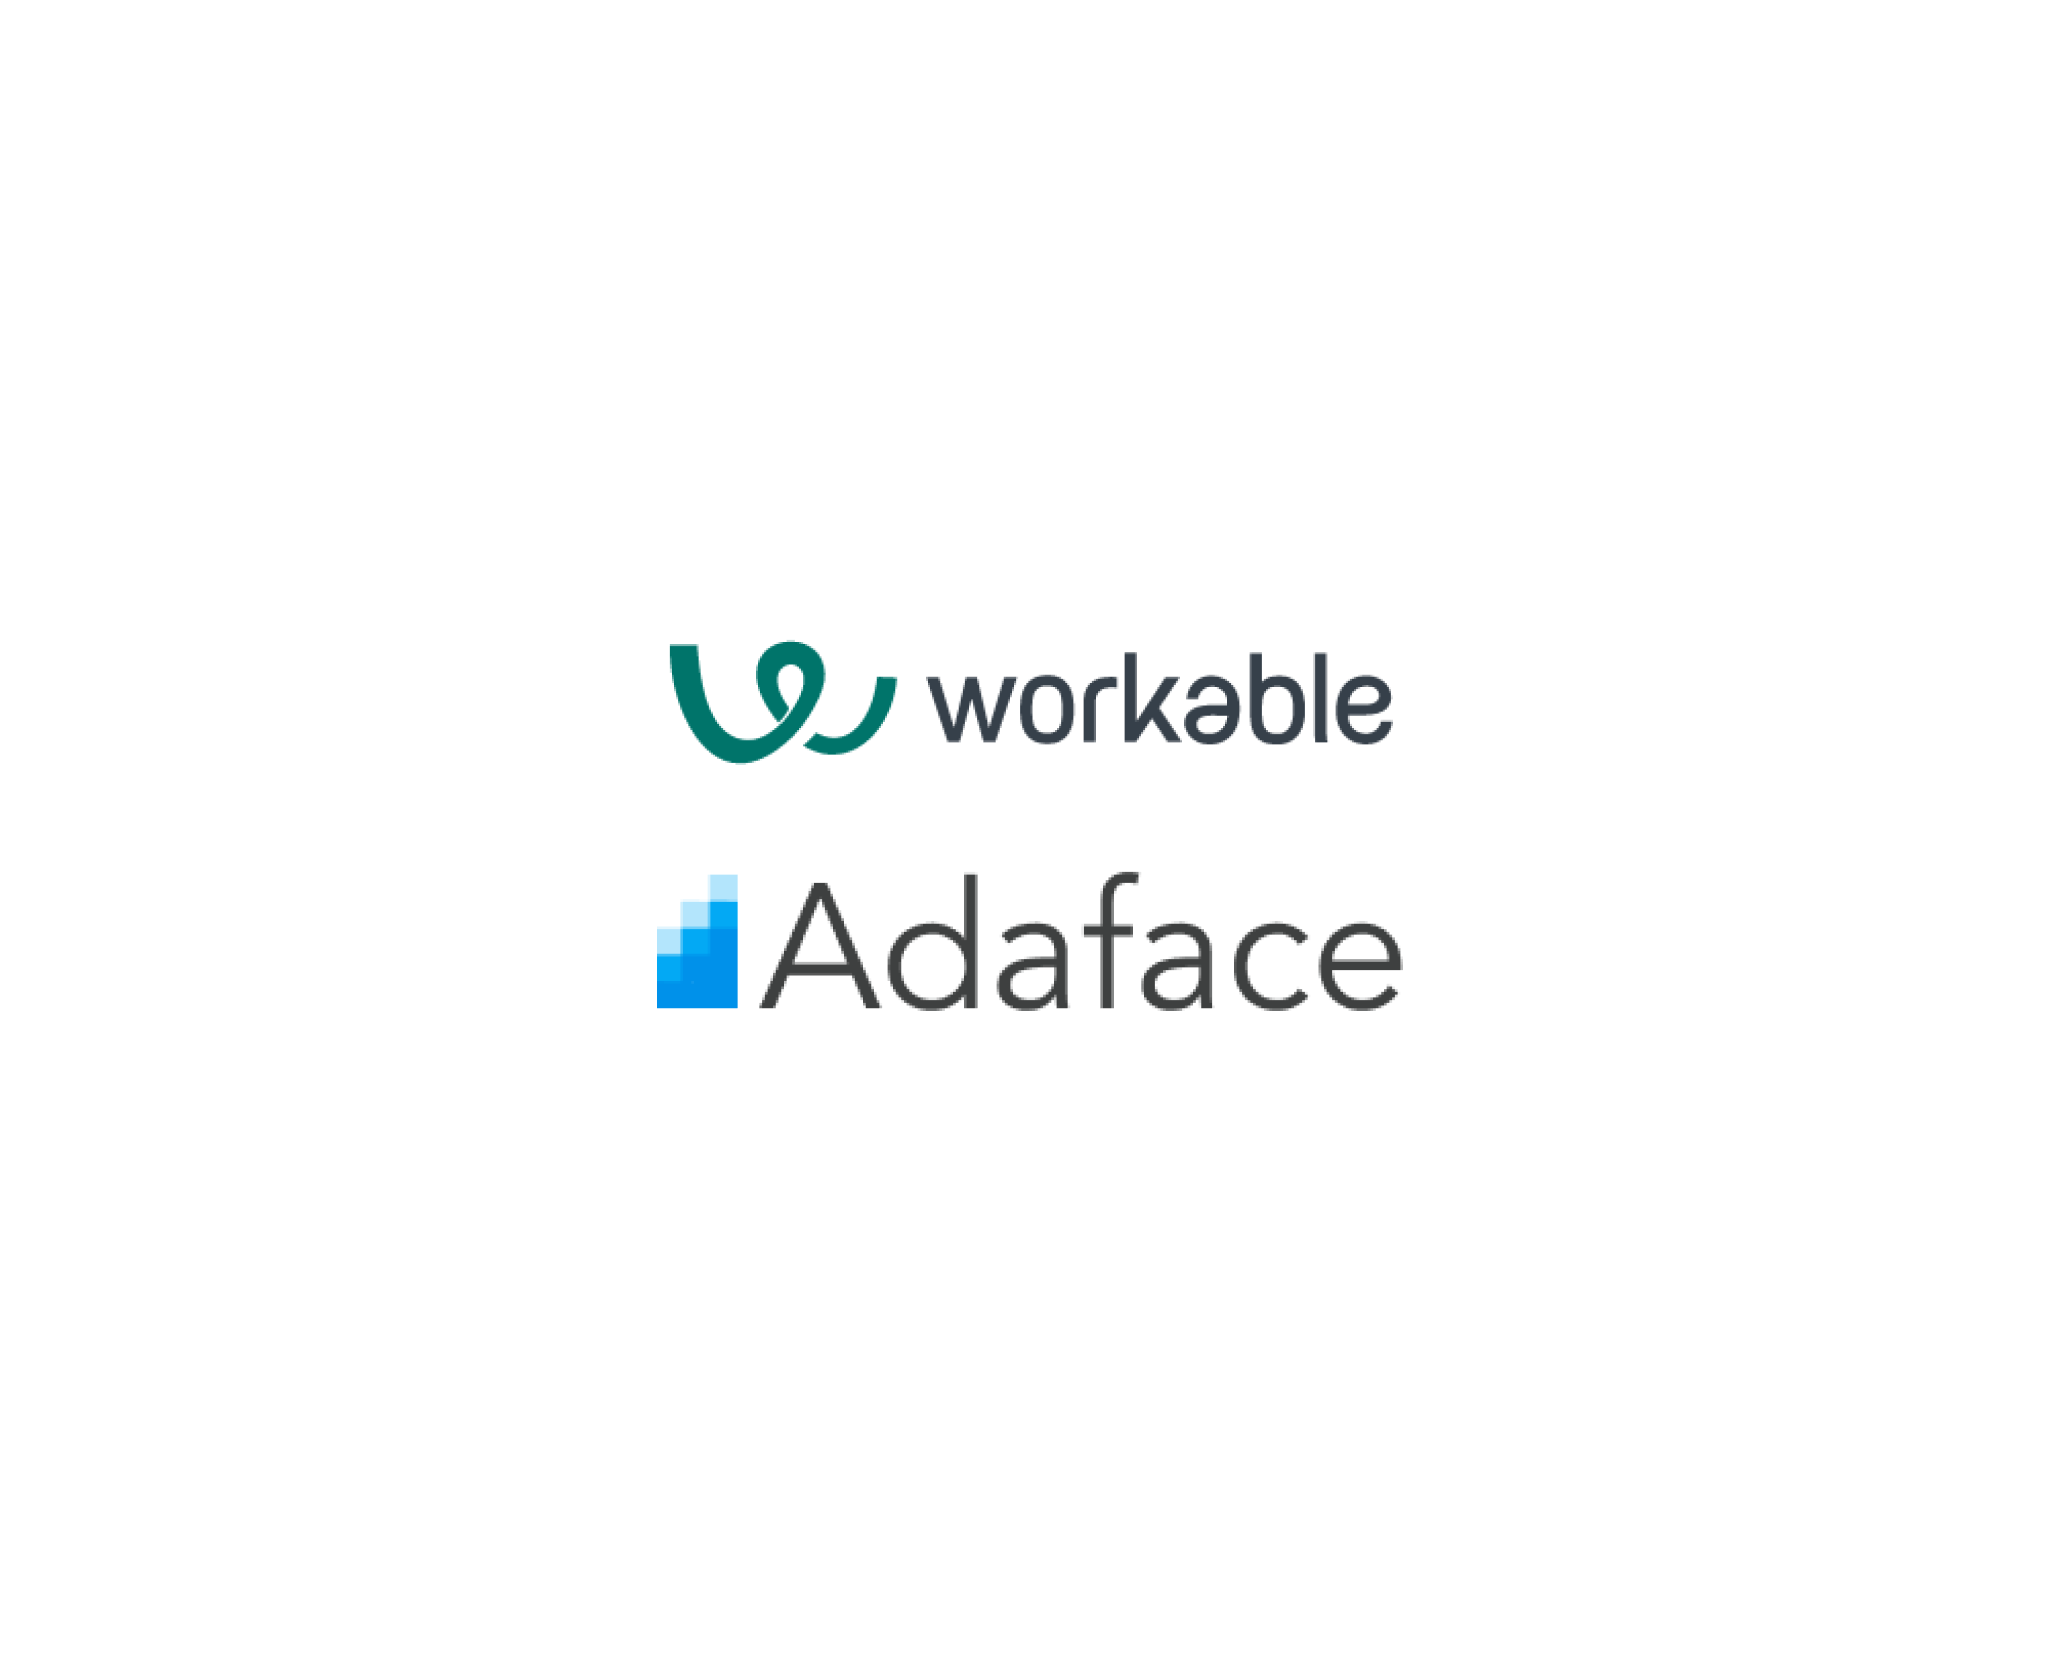 Adaface and Workable Integration image